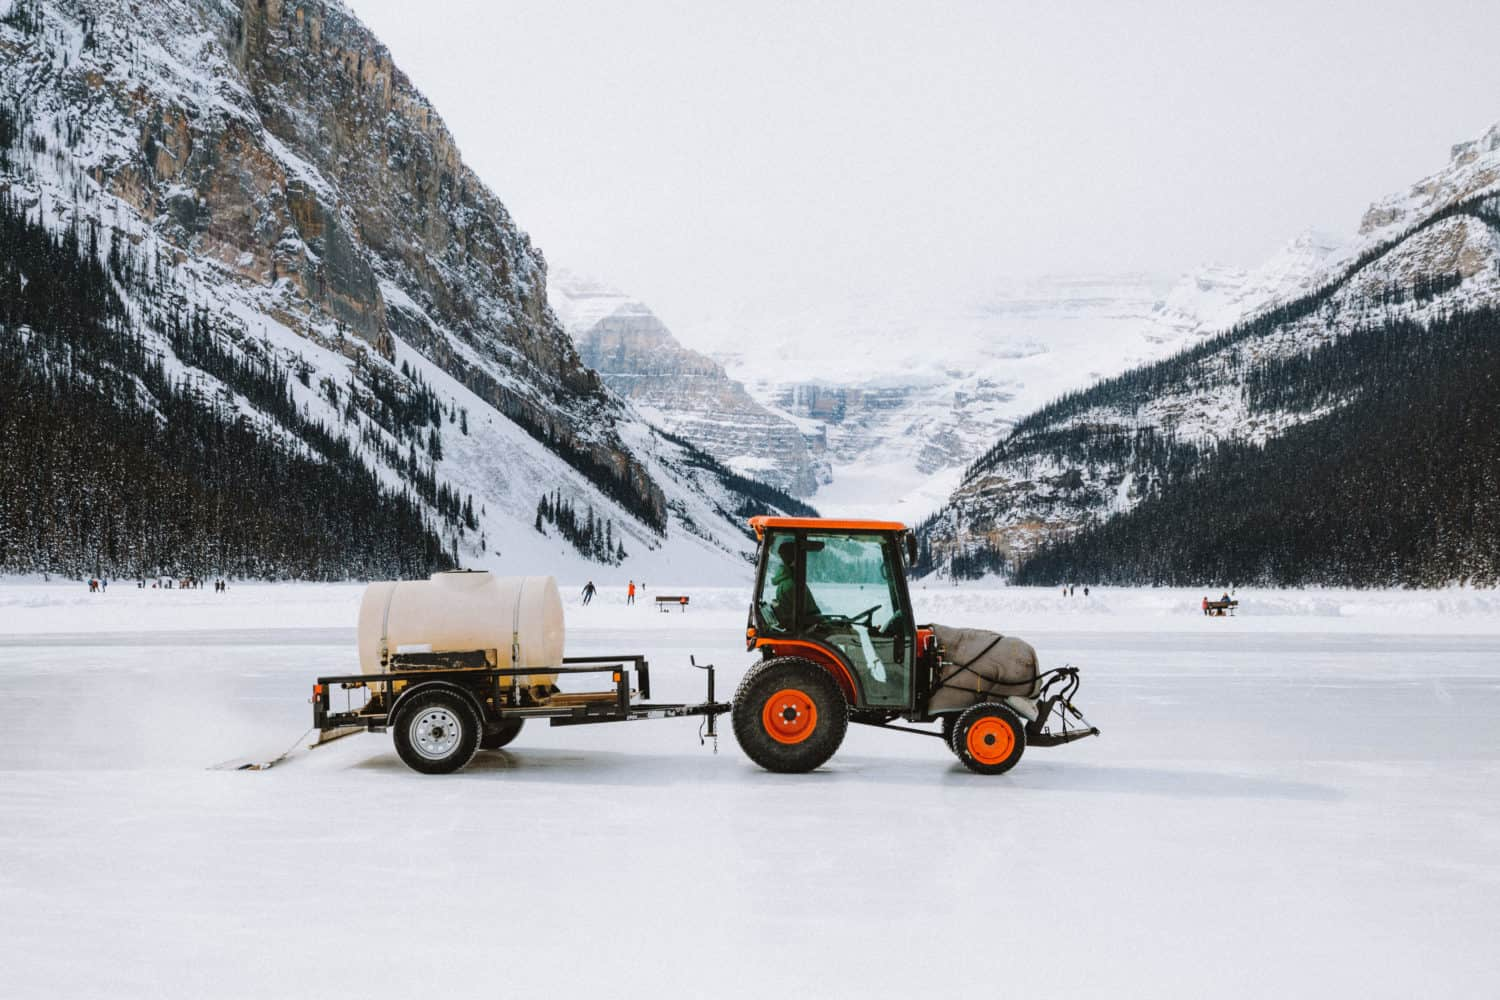 Zamboni Ice Skating on Lake Louise - TheMandagies.com